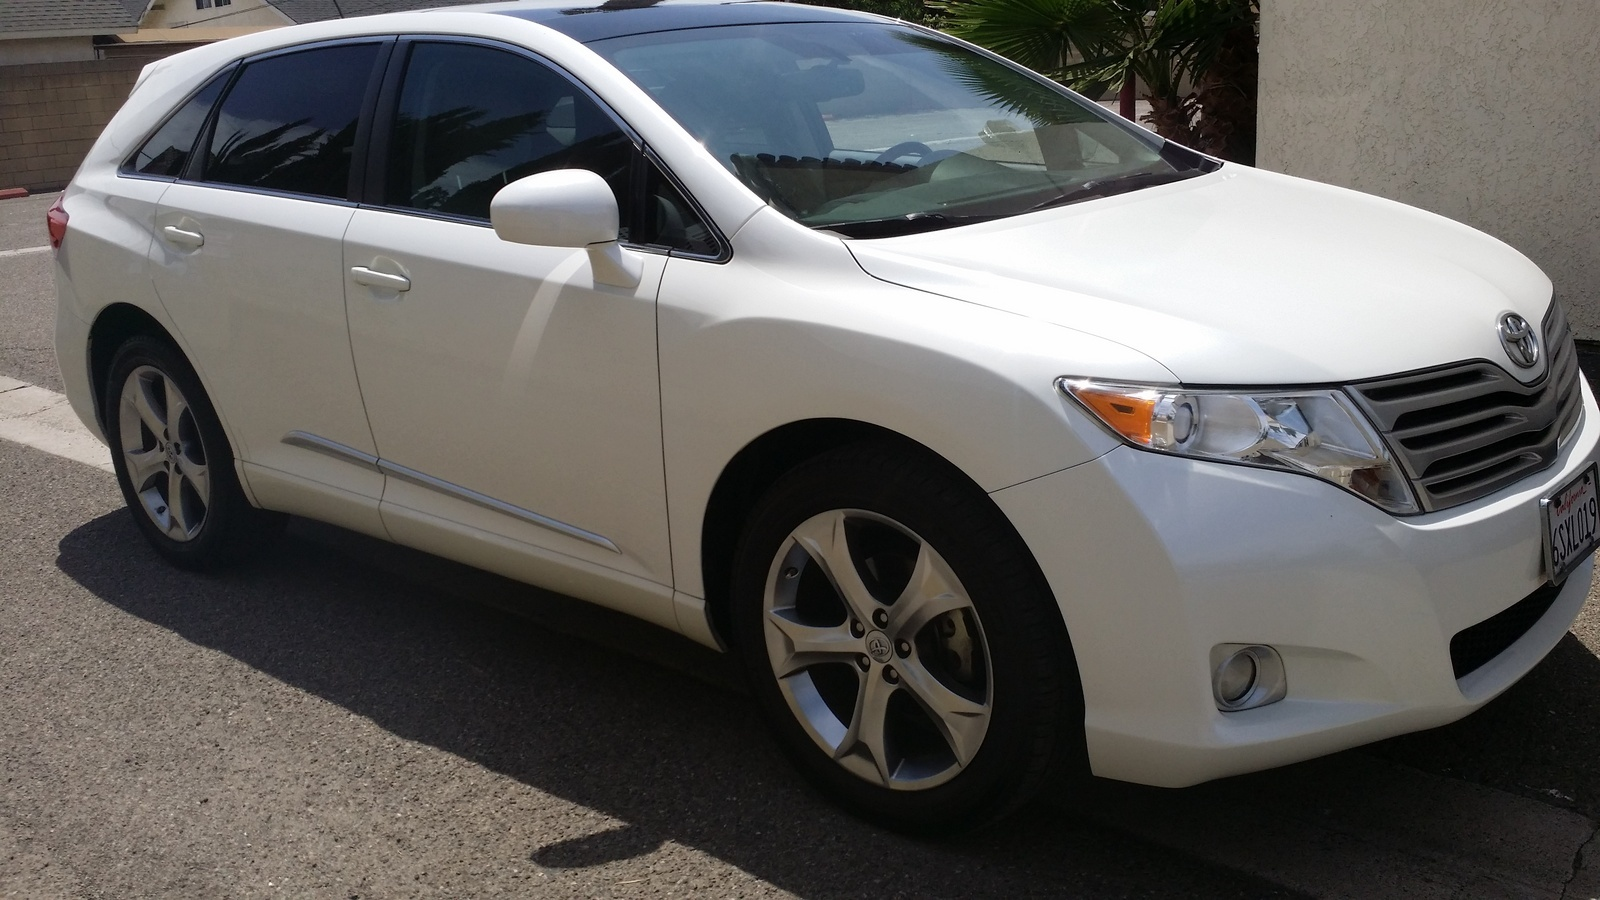 Toyota Venza Questions - Hi, I try to post my car for sale but my ...